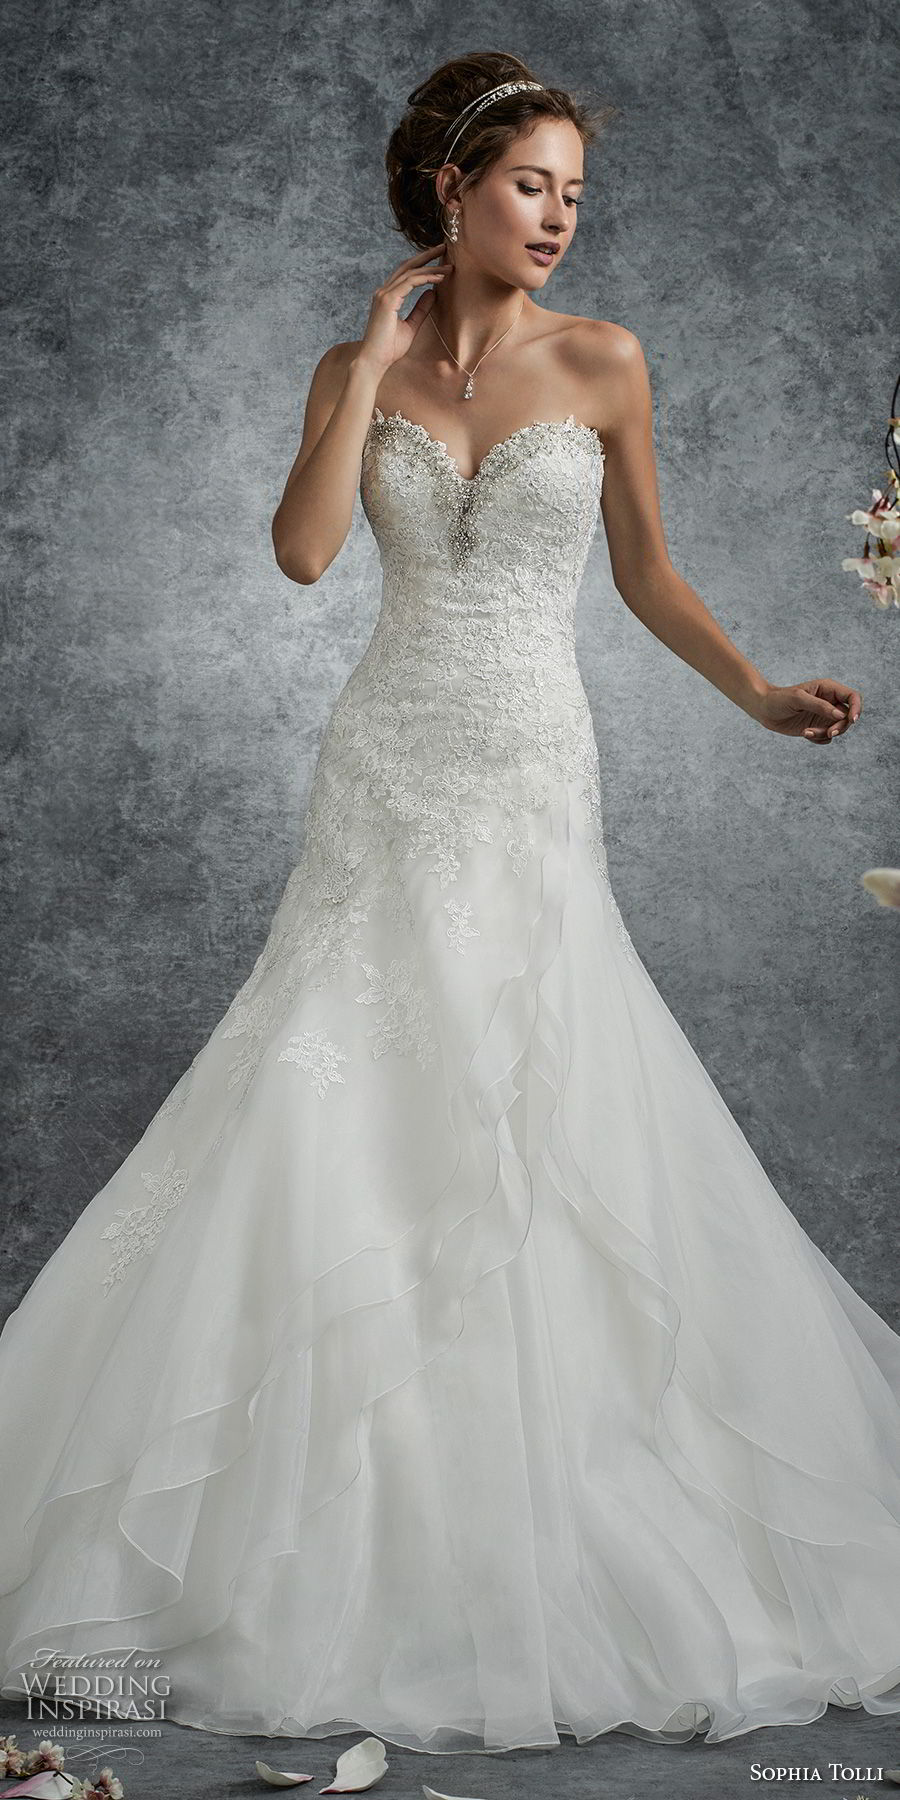 Dress Neckline Sweetheart Flare Fit Wedding Embellished And And Lace Soft Tulle Line